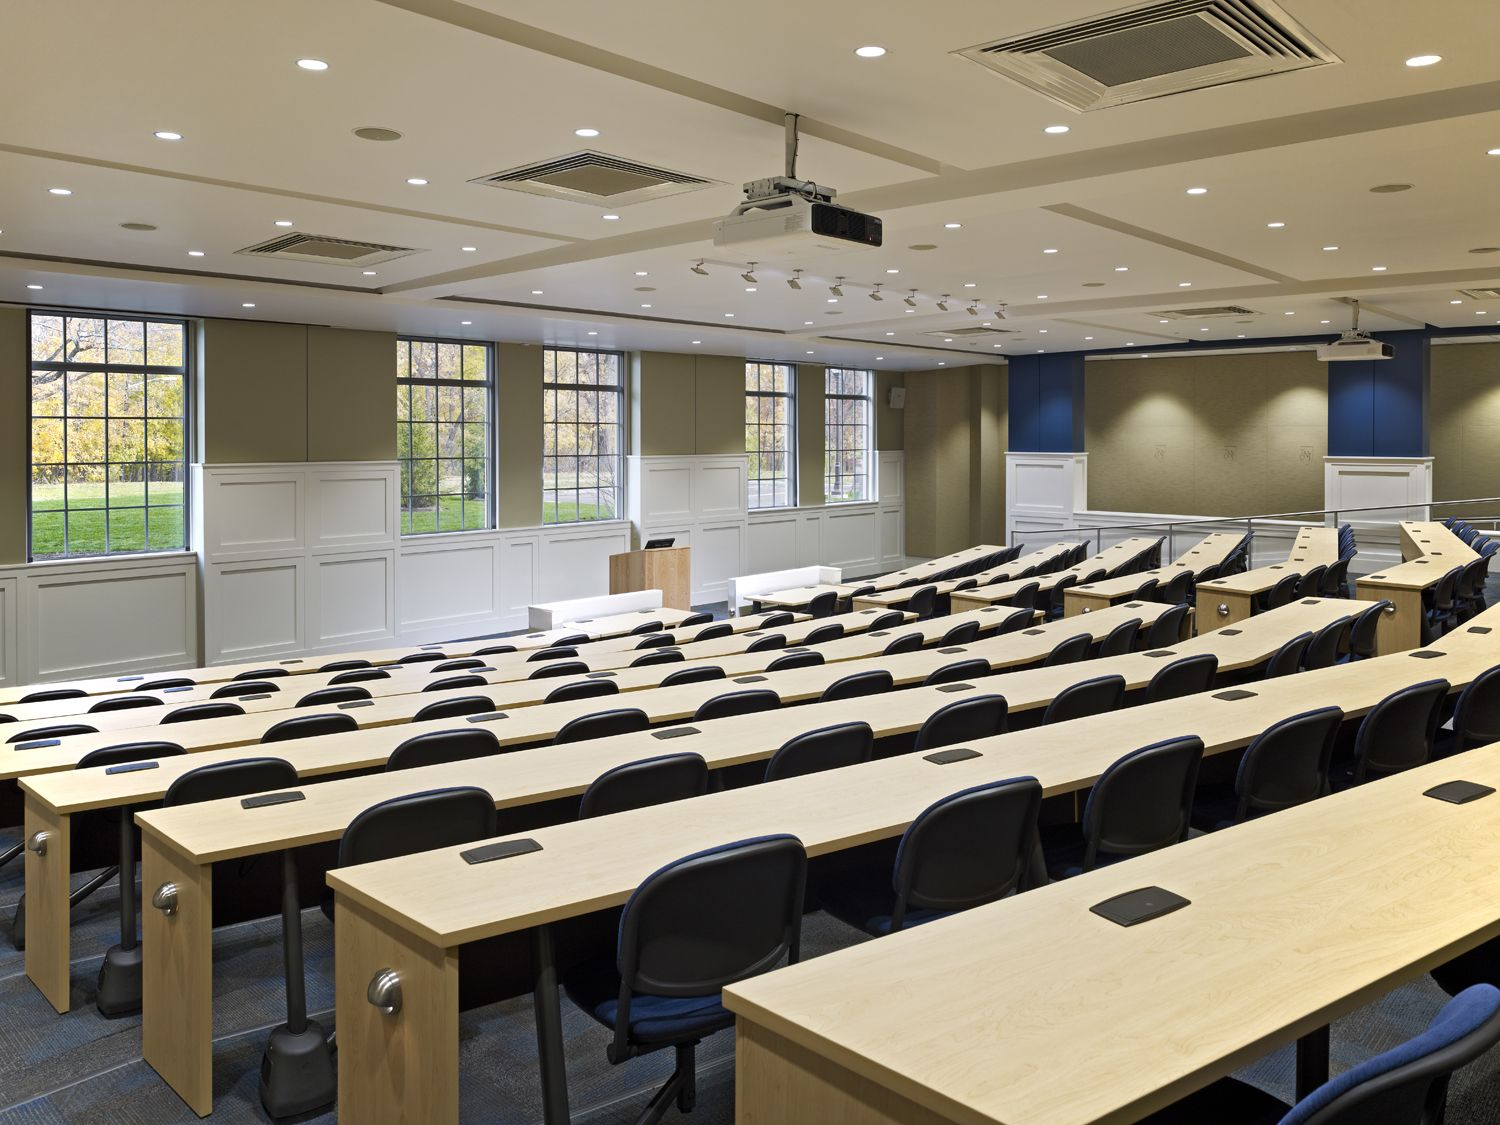 The College Of New Jersey School Of Business Lecture Hall Classroom Conference Architecture In Interior Design Colleges Classroom Interior School Interior